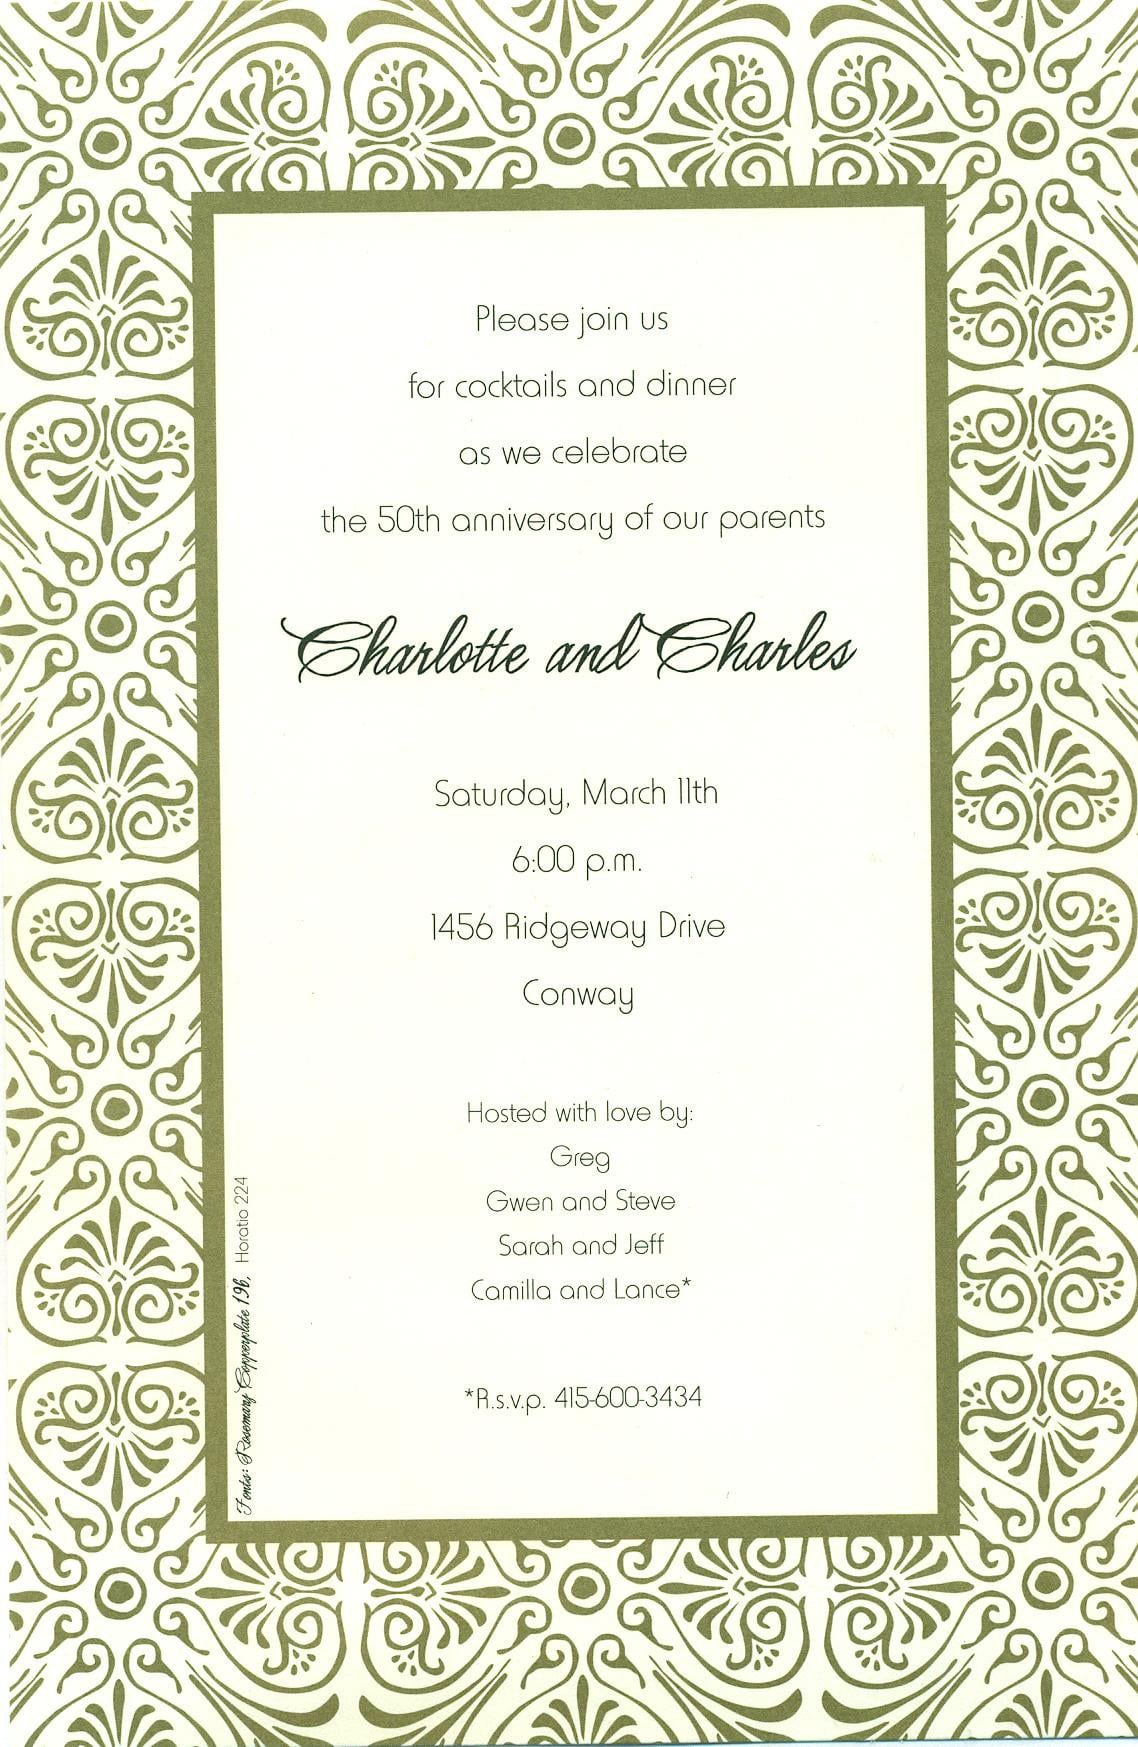 Dinner Invitation Templates Free party invitation templates free – Dinner Invitation Templates Free